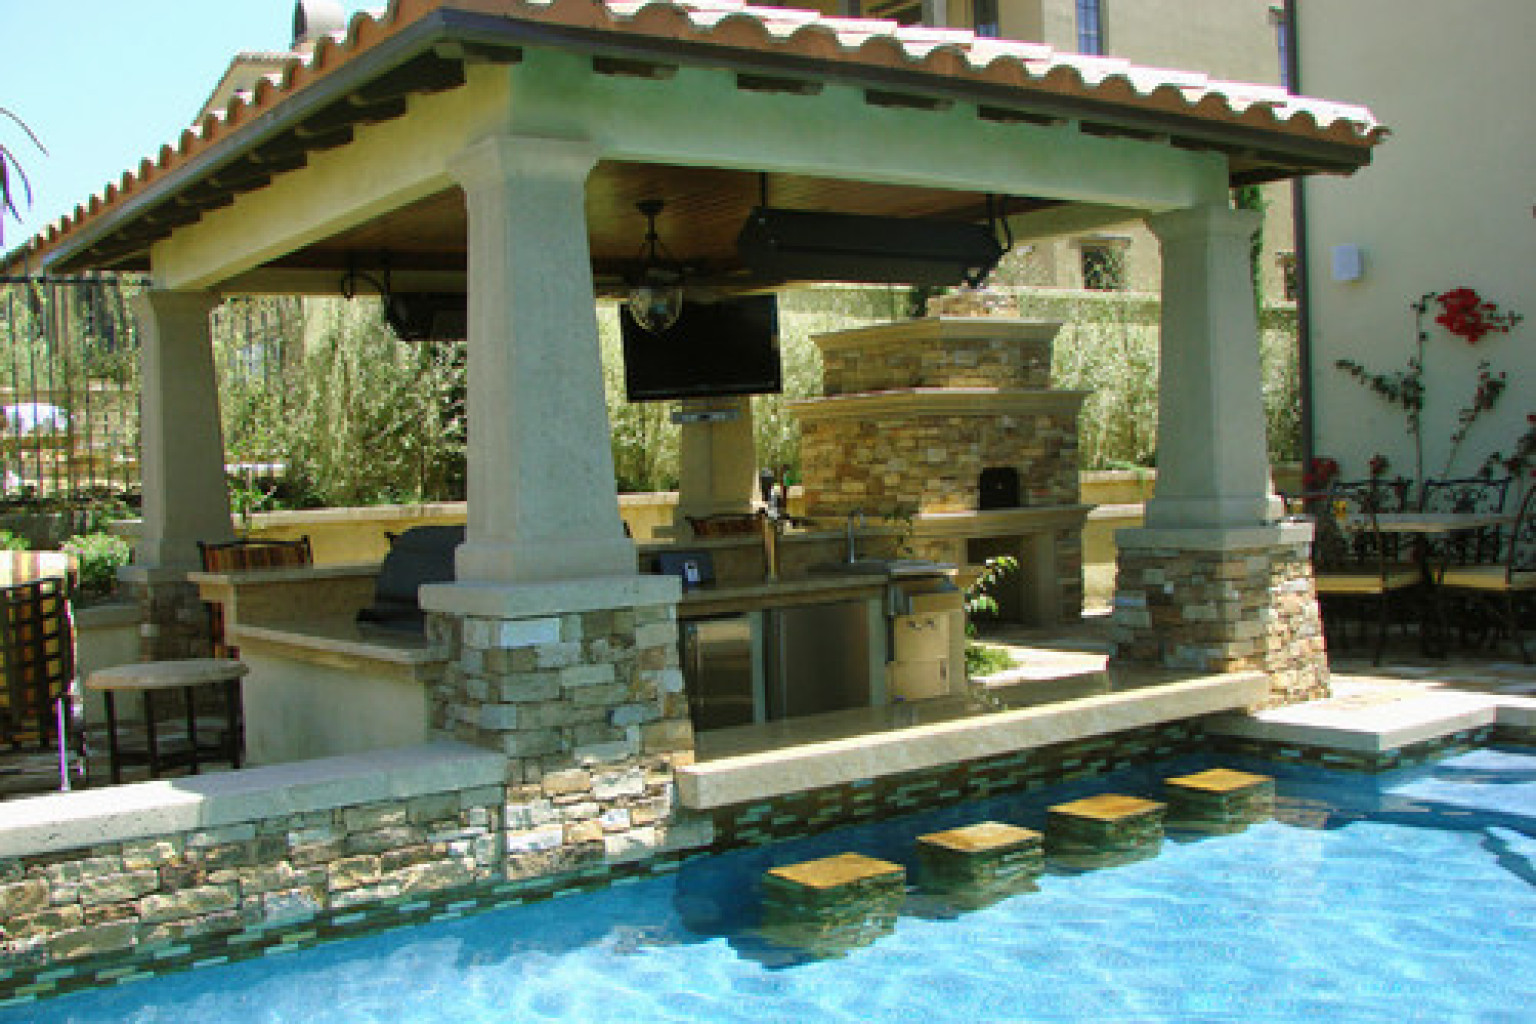 10 Swim-Up Bars That, If You Had, You'd Never Want To ... on Backyard Pool Bar Designs id=58247